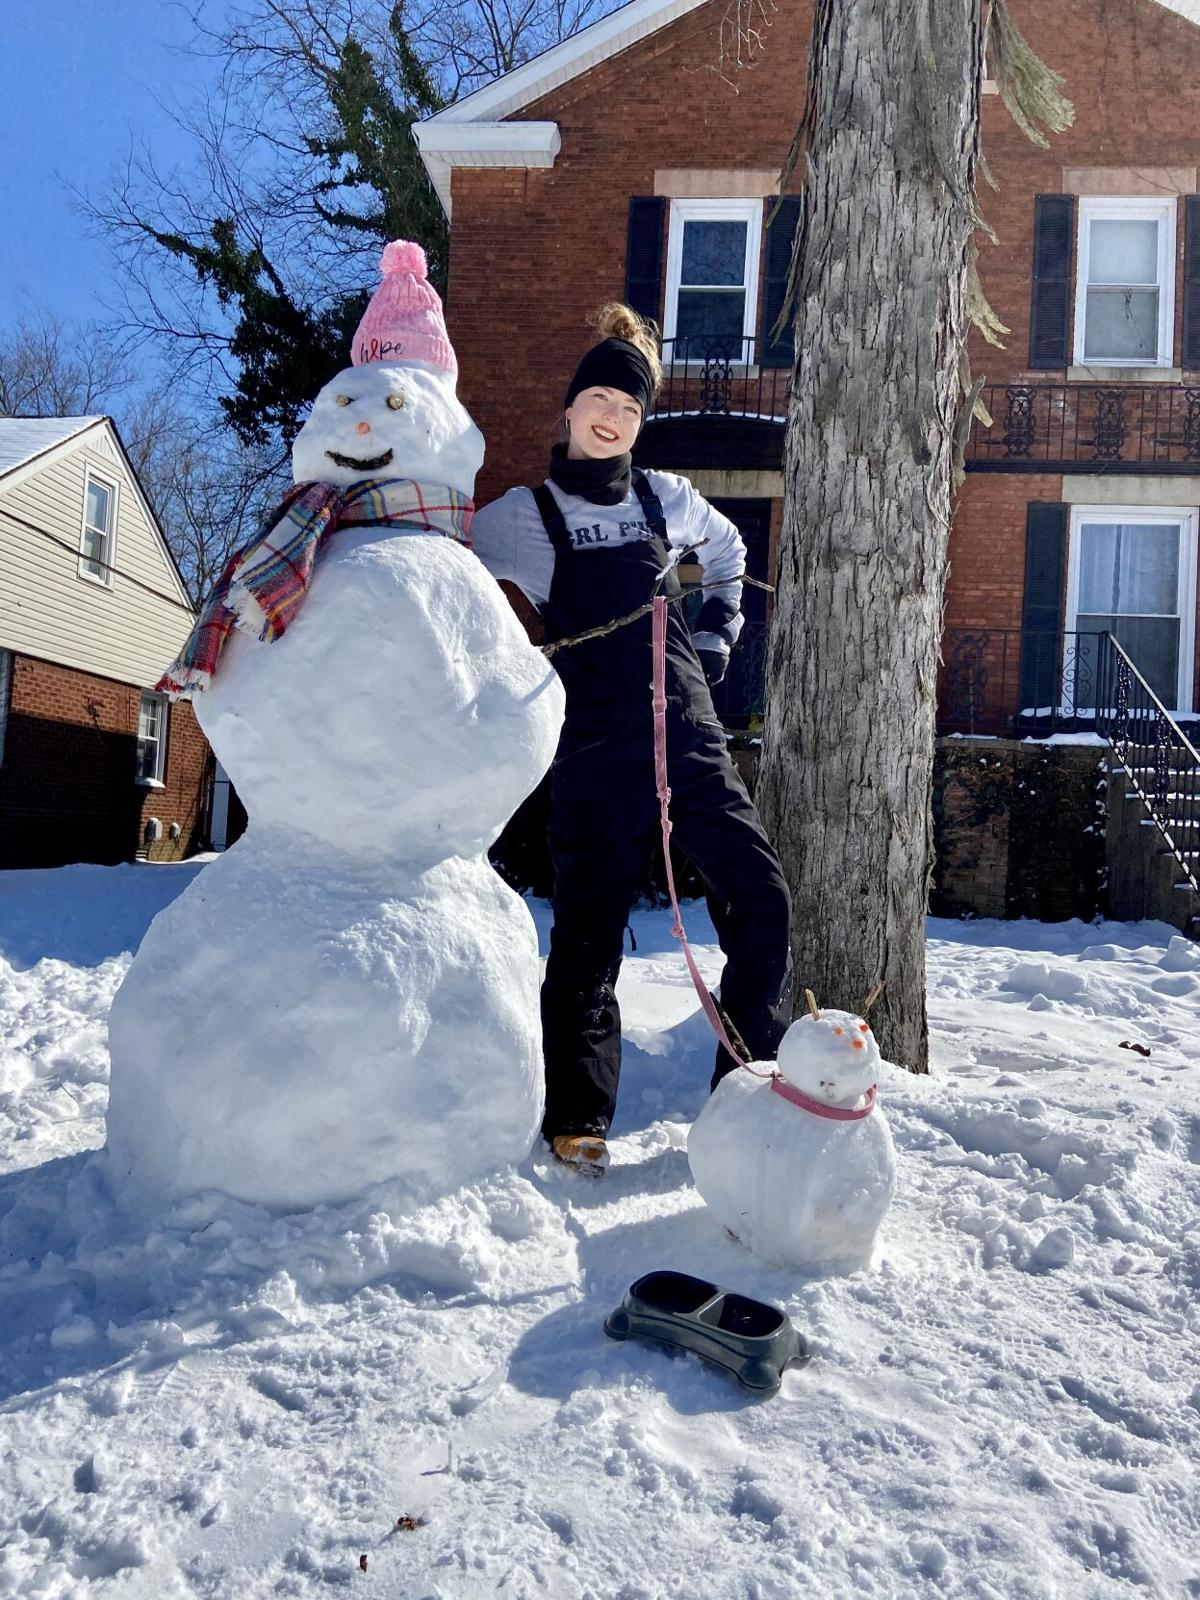 6' Snow person and snow dog, courtesy of Briana Rollins and Samuel Hawkins.